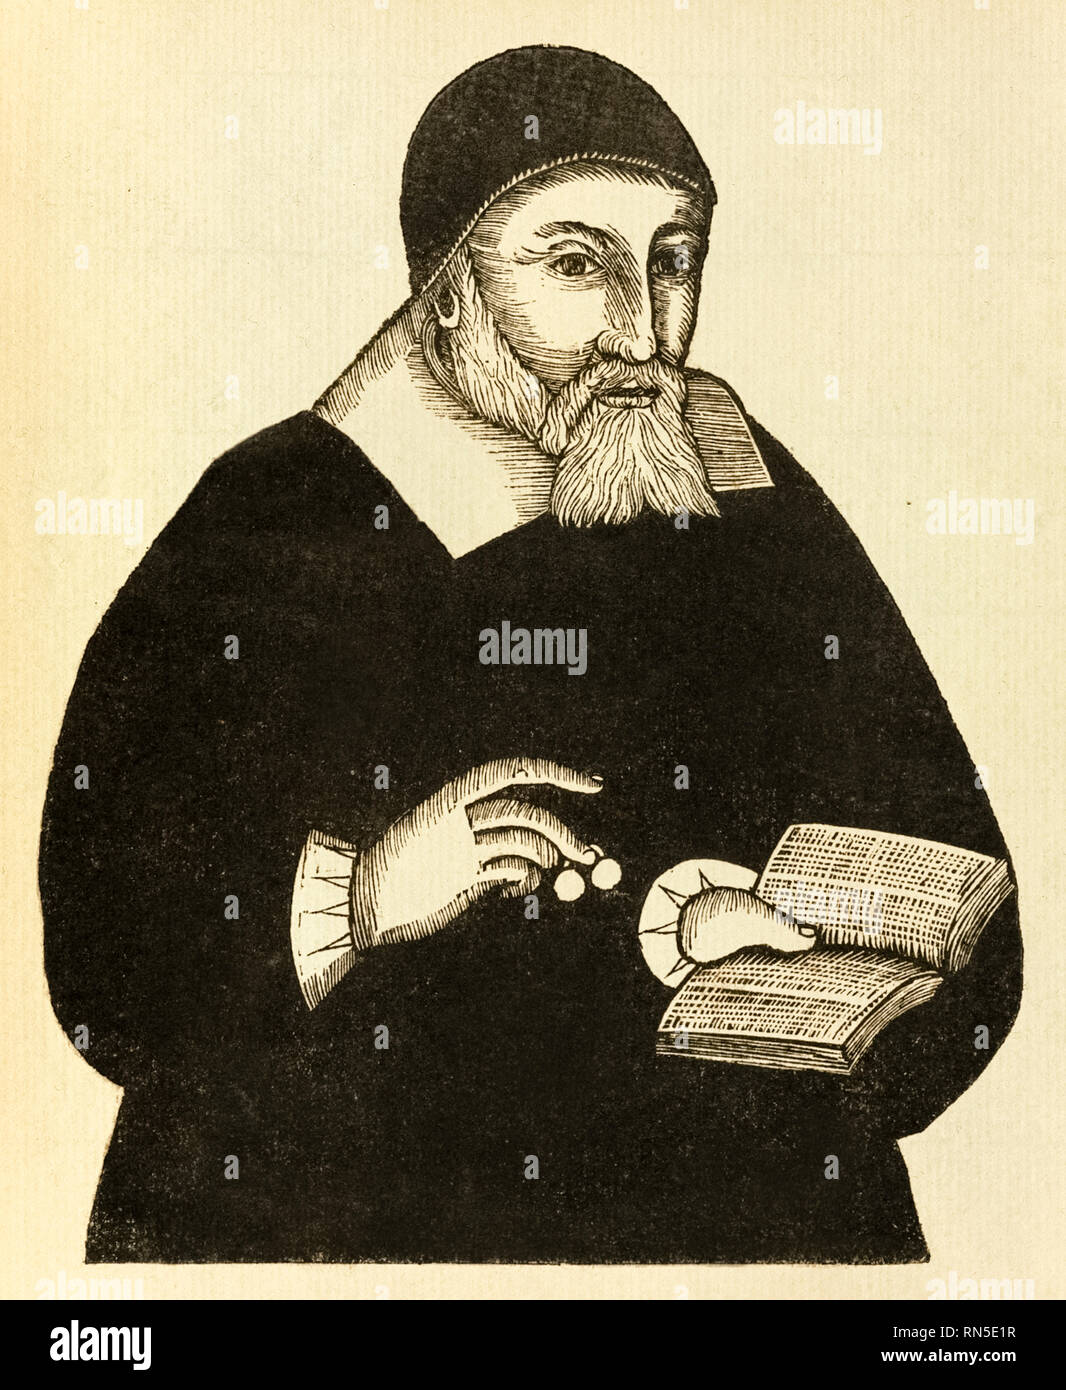 Richard Mather (1596-1669) first in a line of New England Puritan clergymen and leader of New England Congregationalism who co-authored the 'Bay Psalm Book' published in 1640. Reprint of original woodcut by John Foster (1648-1681) the earliest American engrave who was baptised by Richard Mather, published circa 1670. - Stock Image